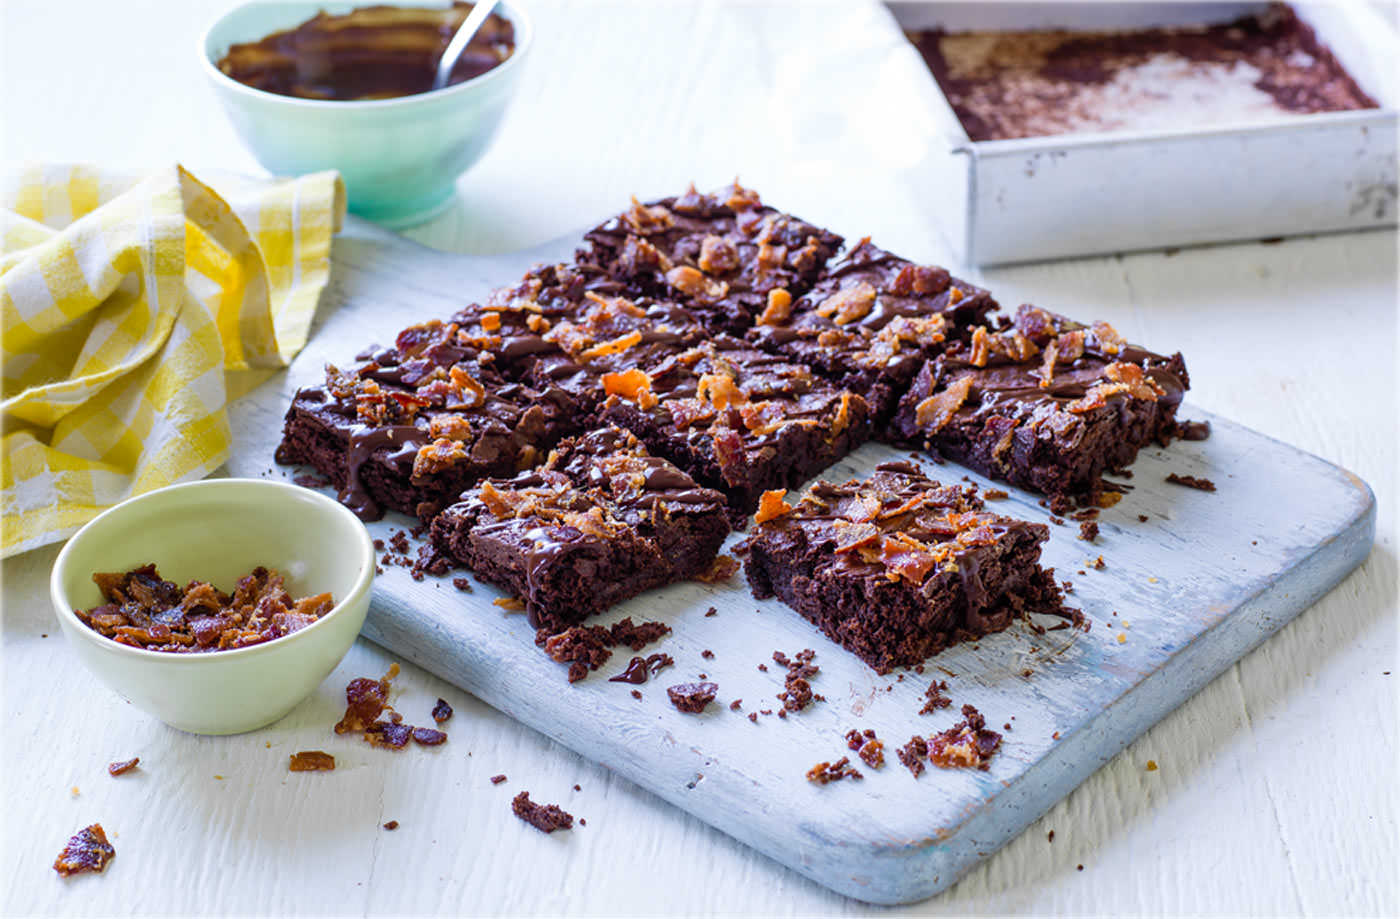 Bacon and whiskey brownies recipe